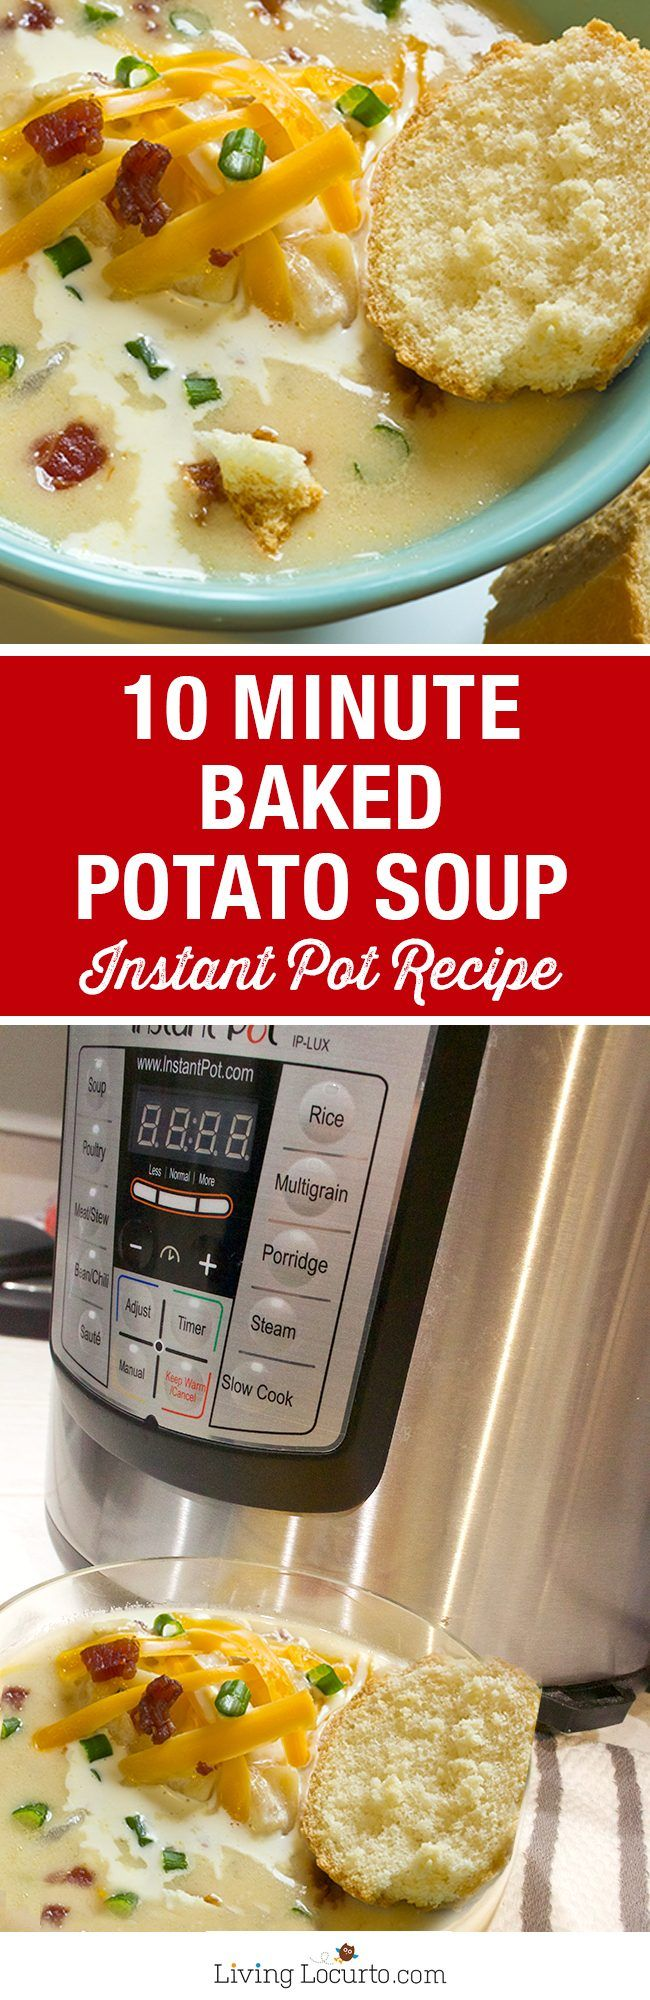 10 Minute Baked Potato Soup